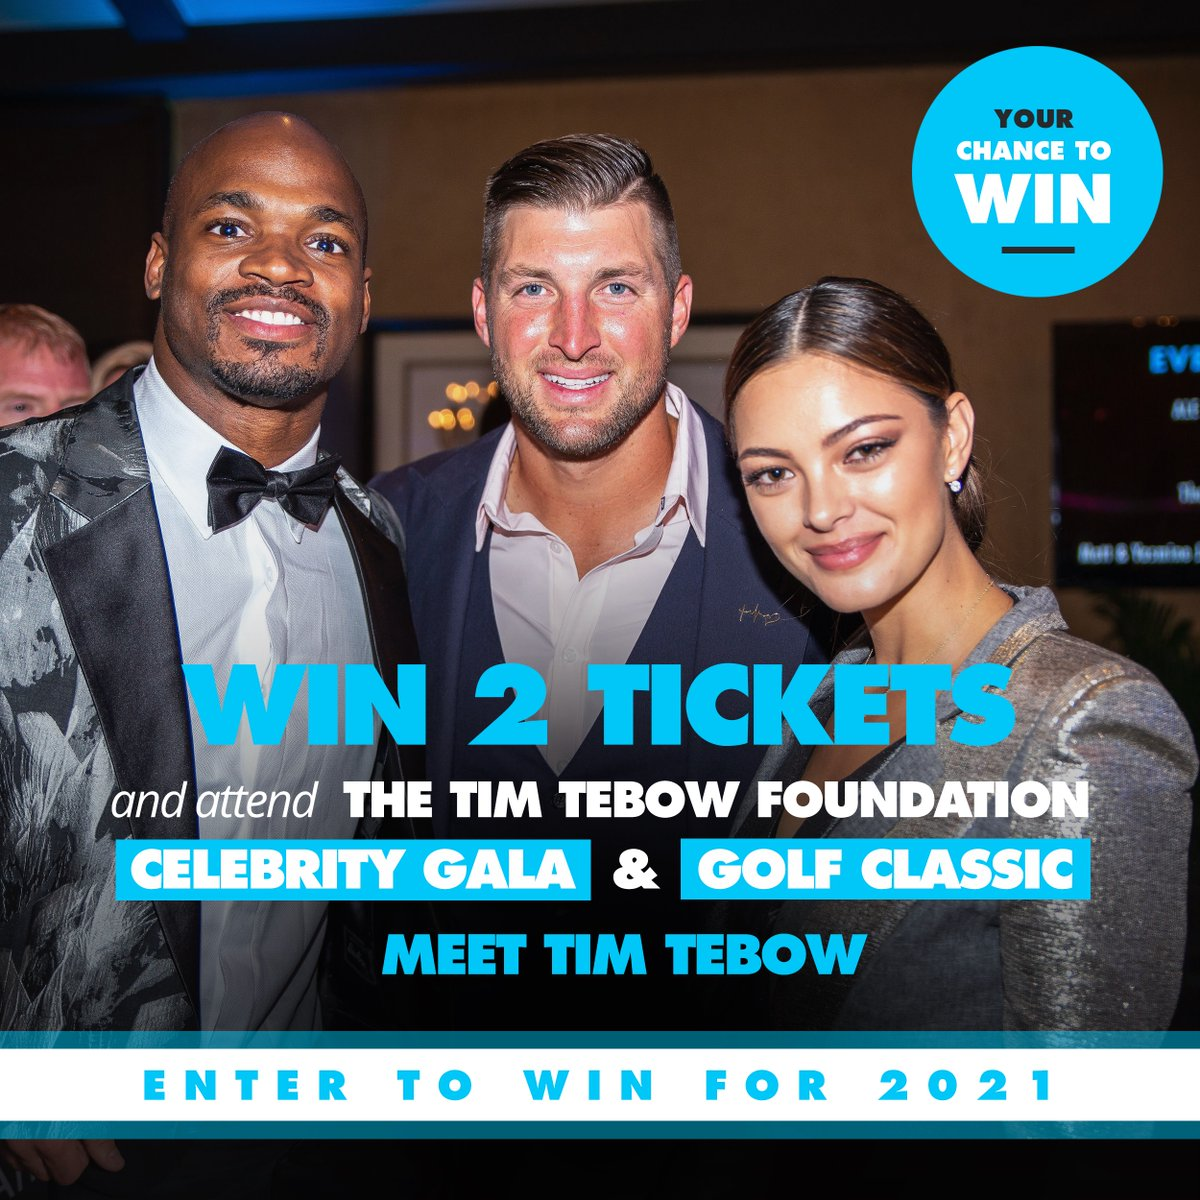 Don't miss your chance to win a package to the 2021 Celebrity Gala & Golf Classic, inclusive of two tickets to the exclusive Celebrity Gala and meet @TimTebow!   Enter Now: http://bit.ly/TTF-RAFFLE or  TEXT 'Movement' to 855-202-2100  #TIMTEBOWFOUNDATION #TPC #SAWGRASSpic.twitter.com/JIxQNOjSMA